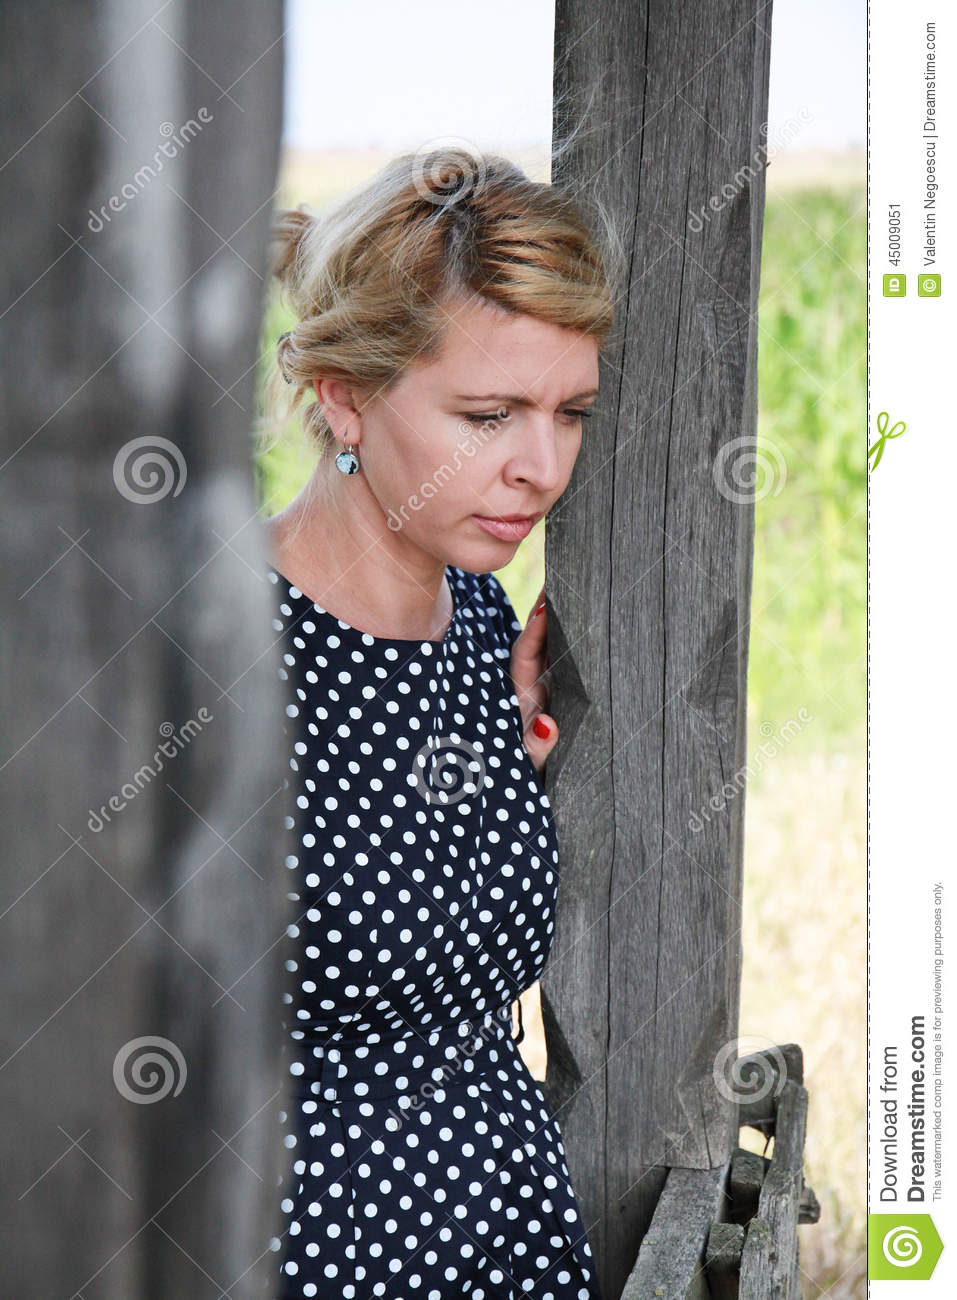 Sad Beautiful Woman With Wistful Expression Stock Image ...